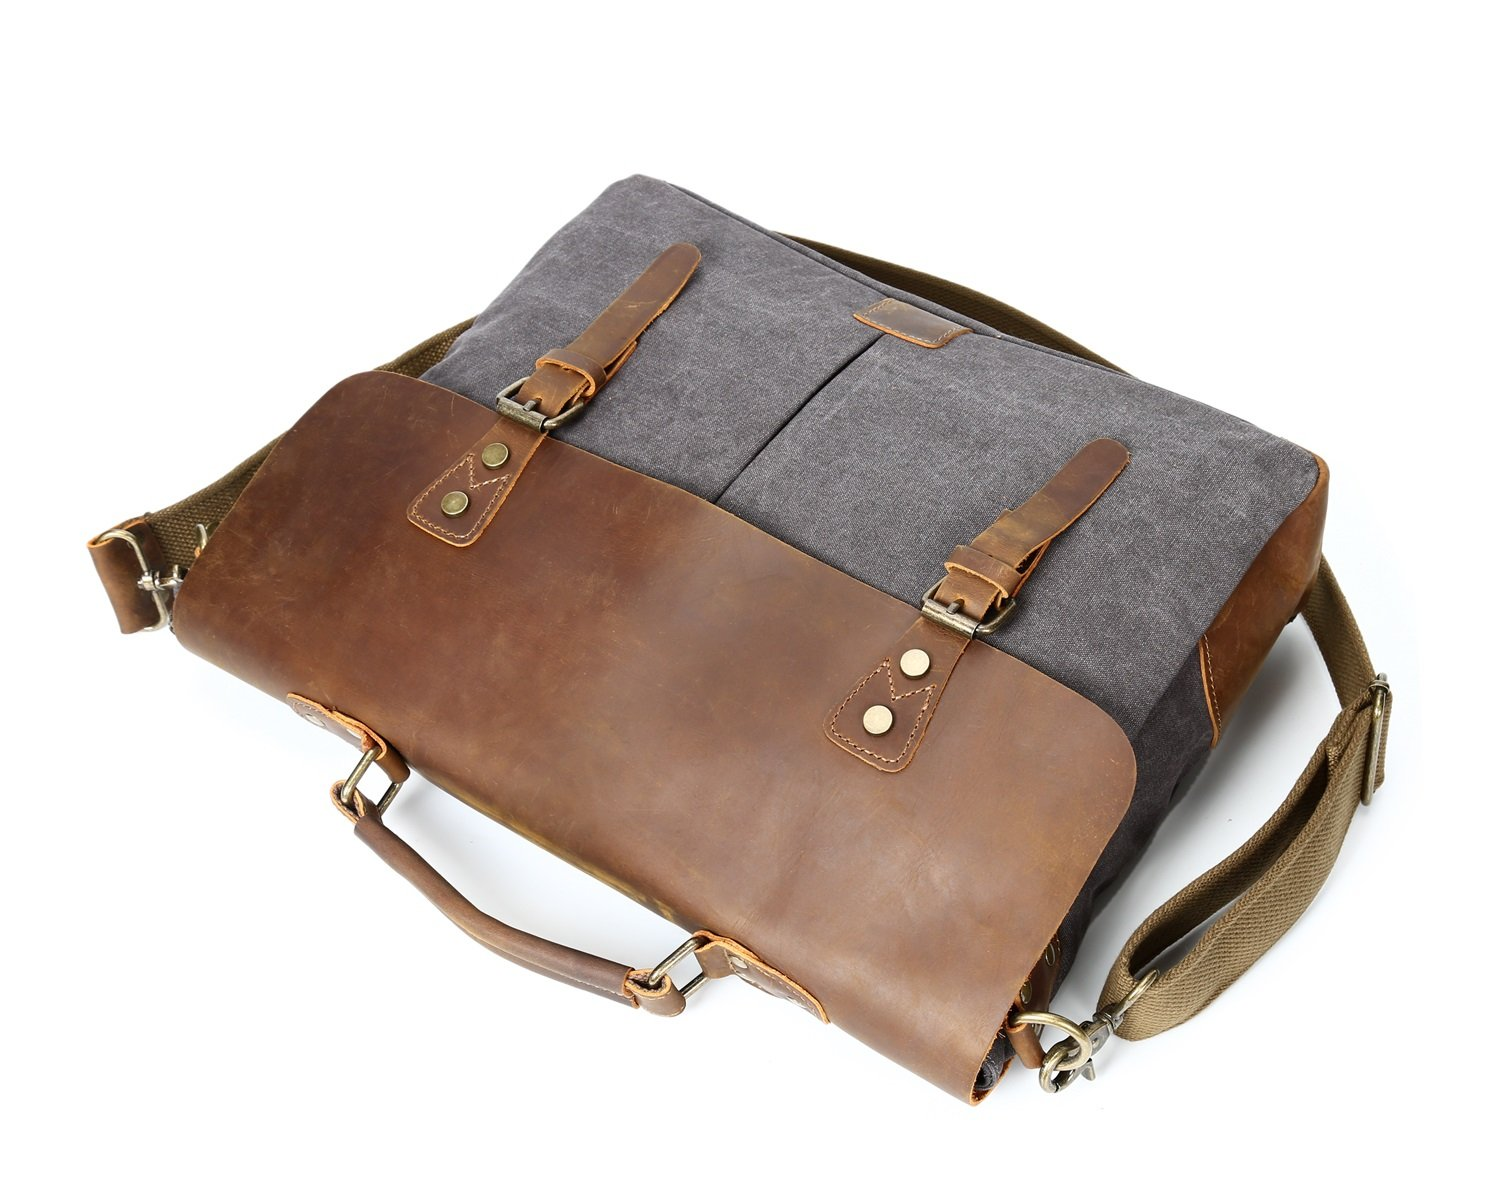 DAYIYANG Special Design Mens Shoulder Bag Retro Crazy Horseskin Bag Crossbody Canvas Bag Laptop Bag Color : Gray, Size : M